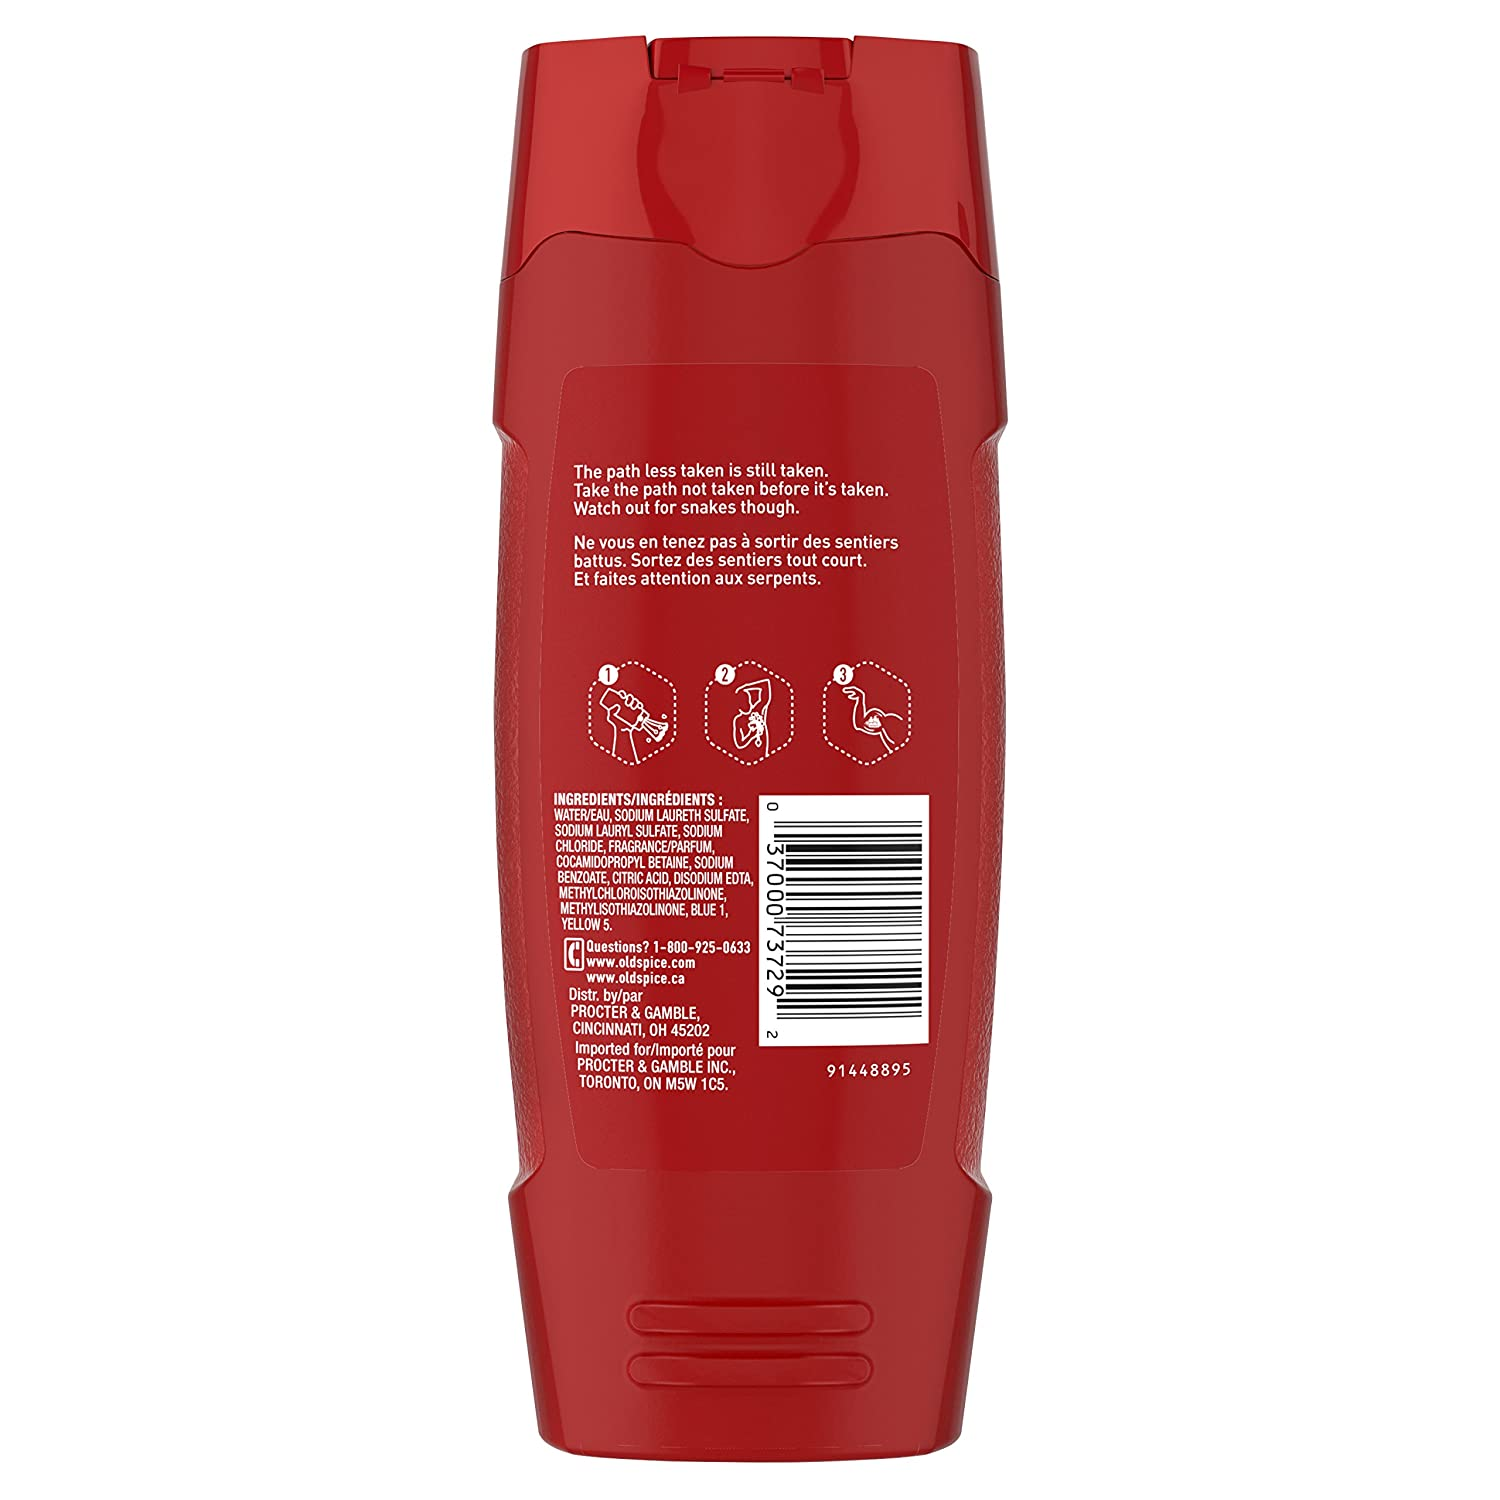 Amazon.com : Old Spice Mens Body Wash, Nomad Scent, Red Collection, 16.0 Fluid Ounce (Pack of 6) : Beauty